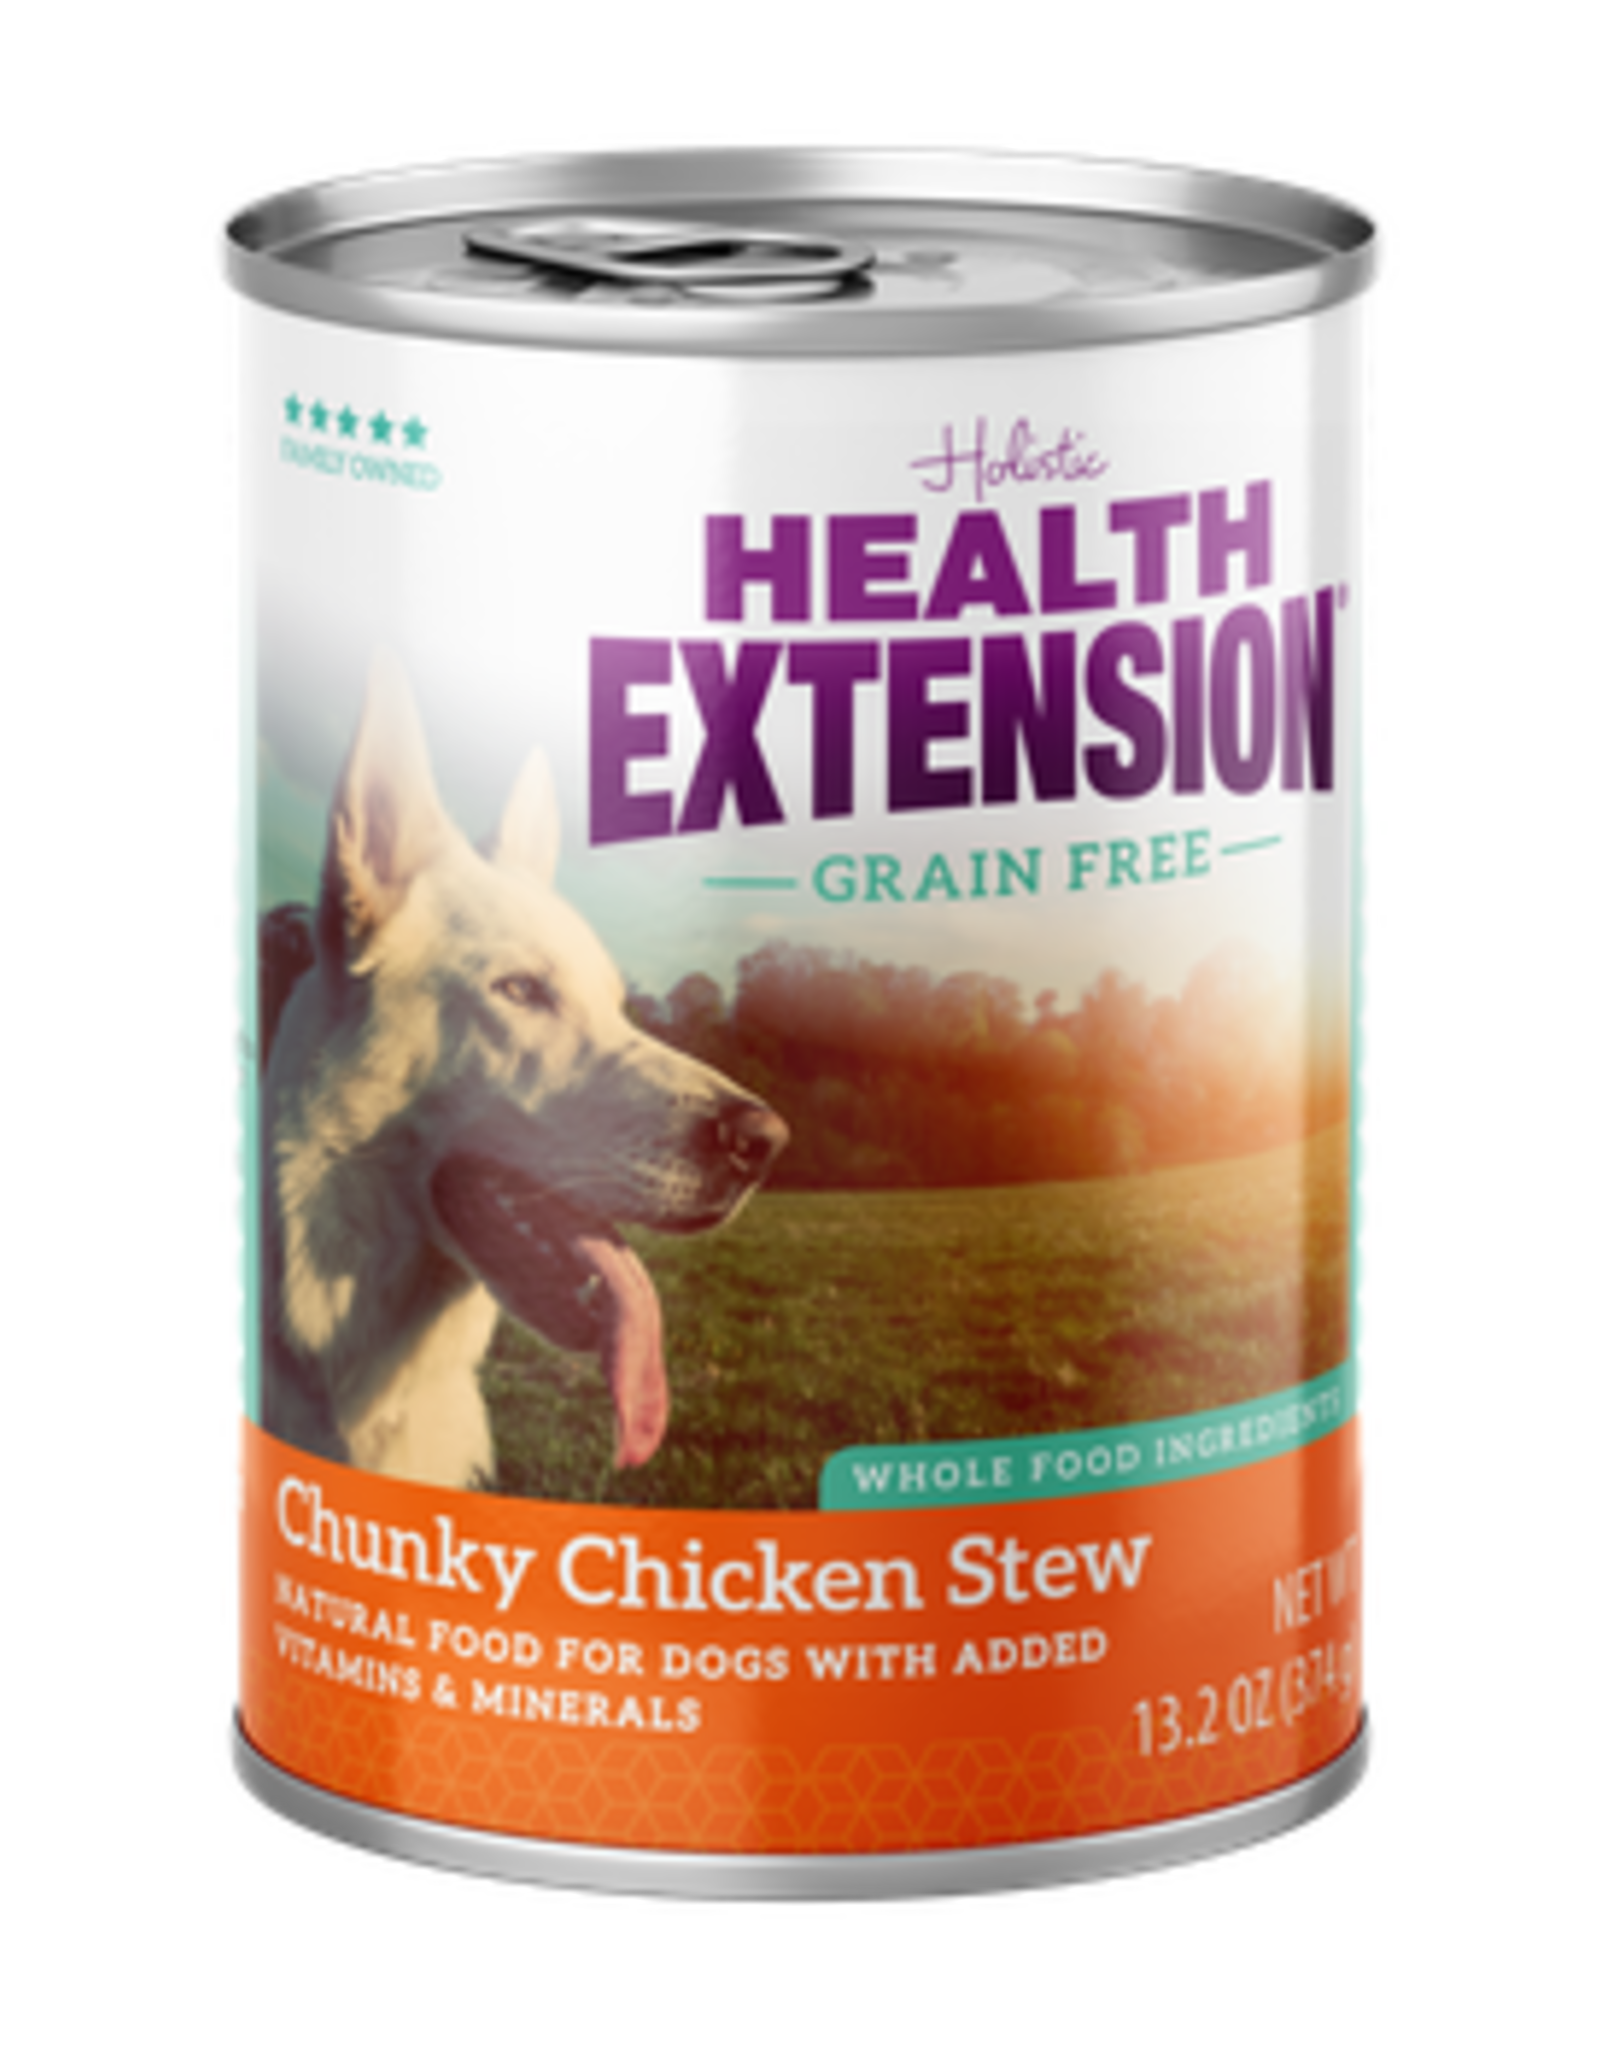 Health Extension *H.EXTENSION GF Chicken Stew 13oz SINGLE